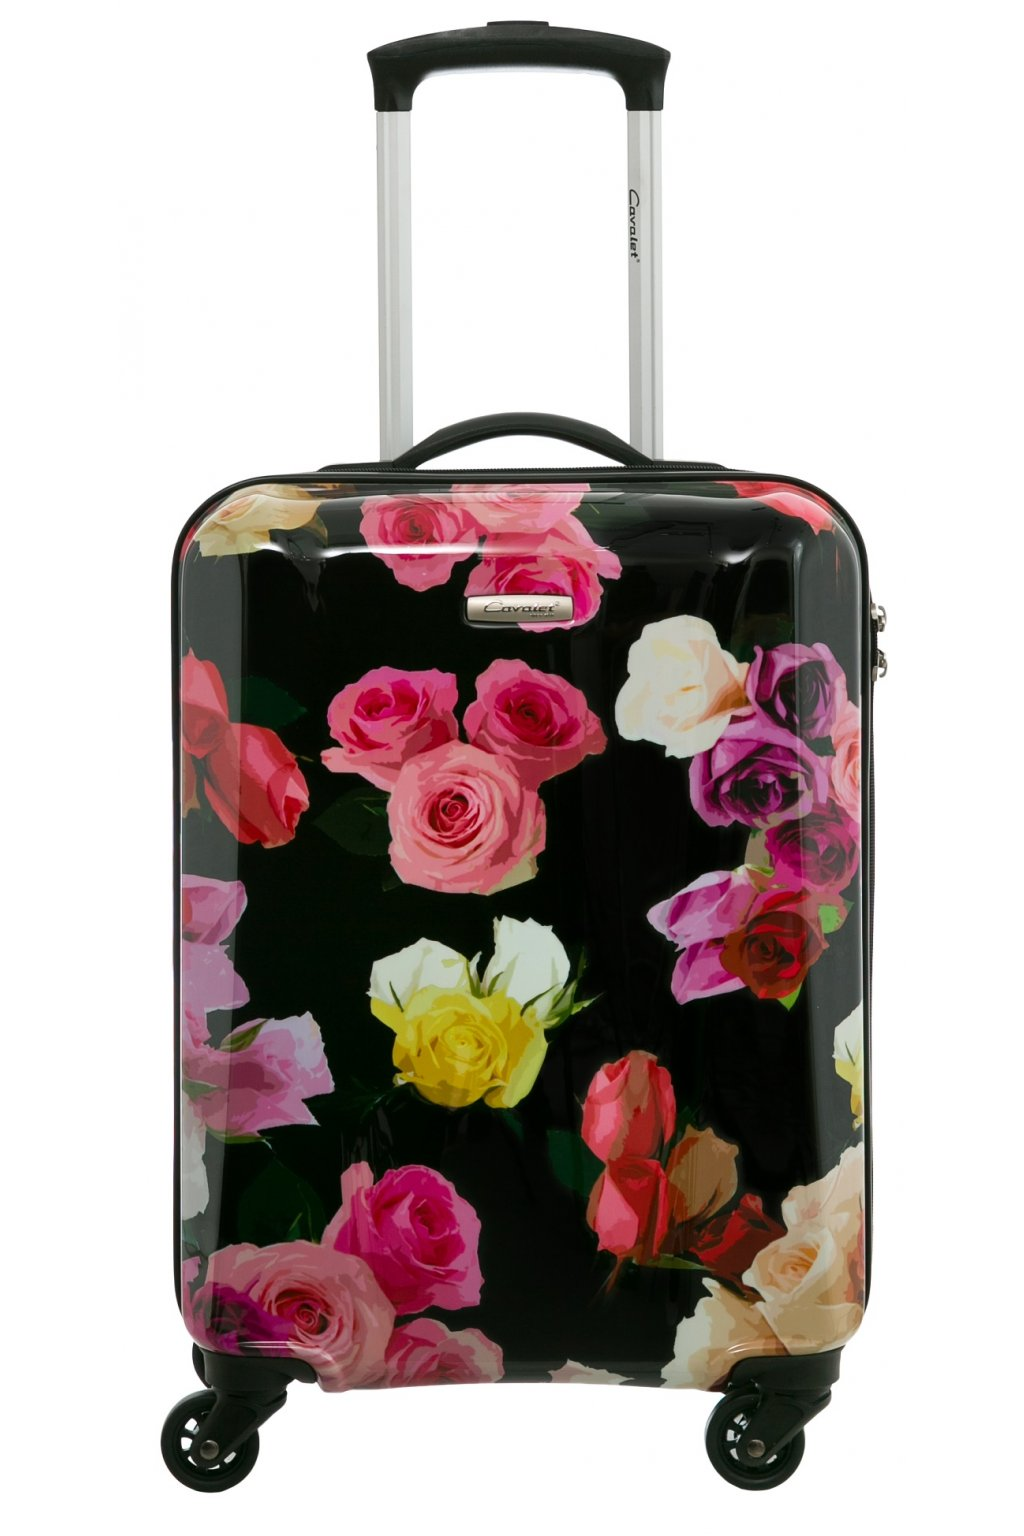 kufrland cavalet rose flower black (2)